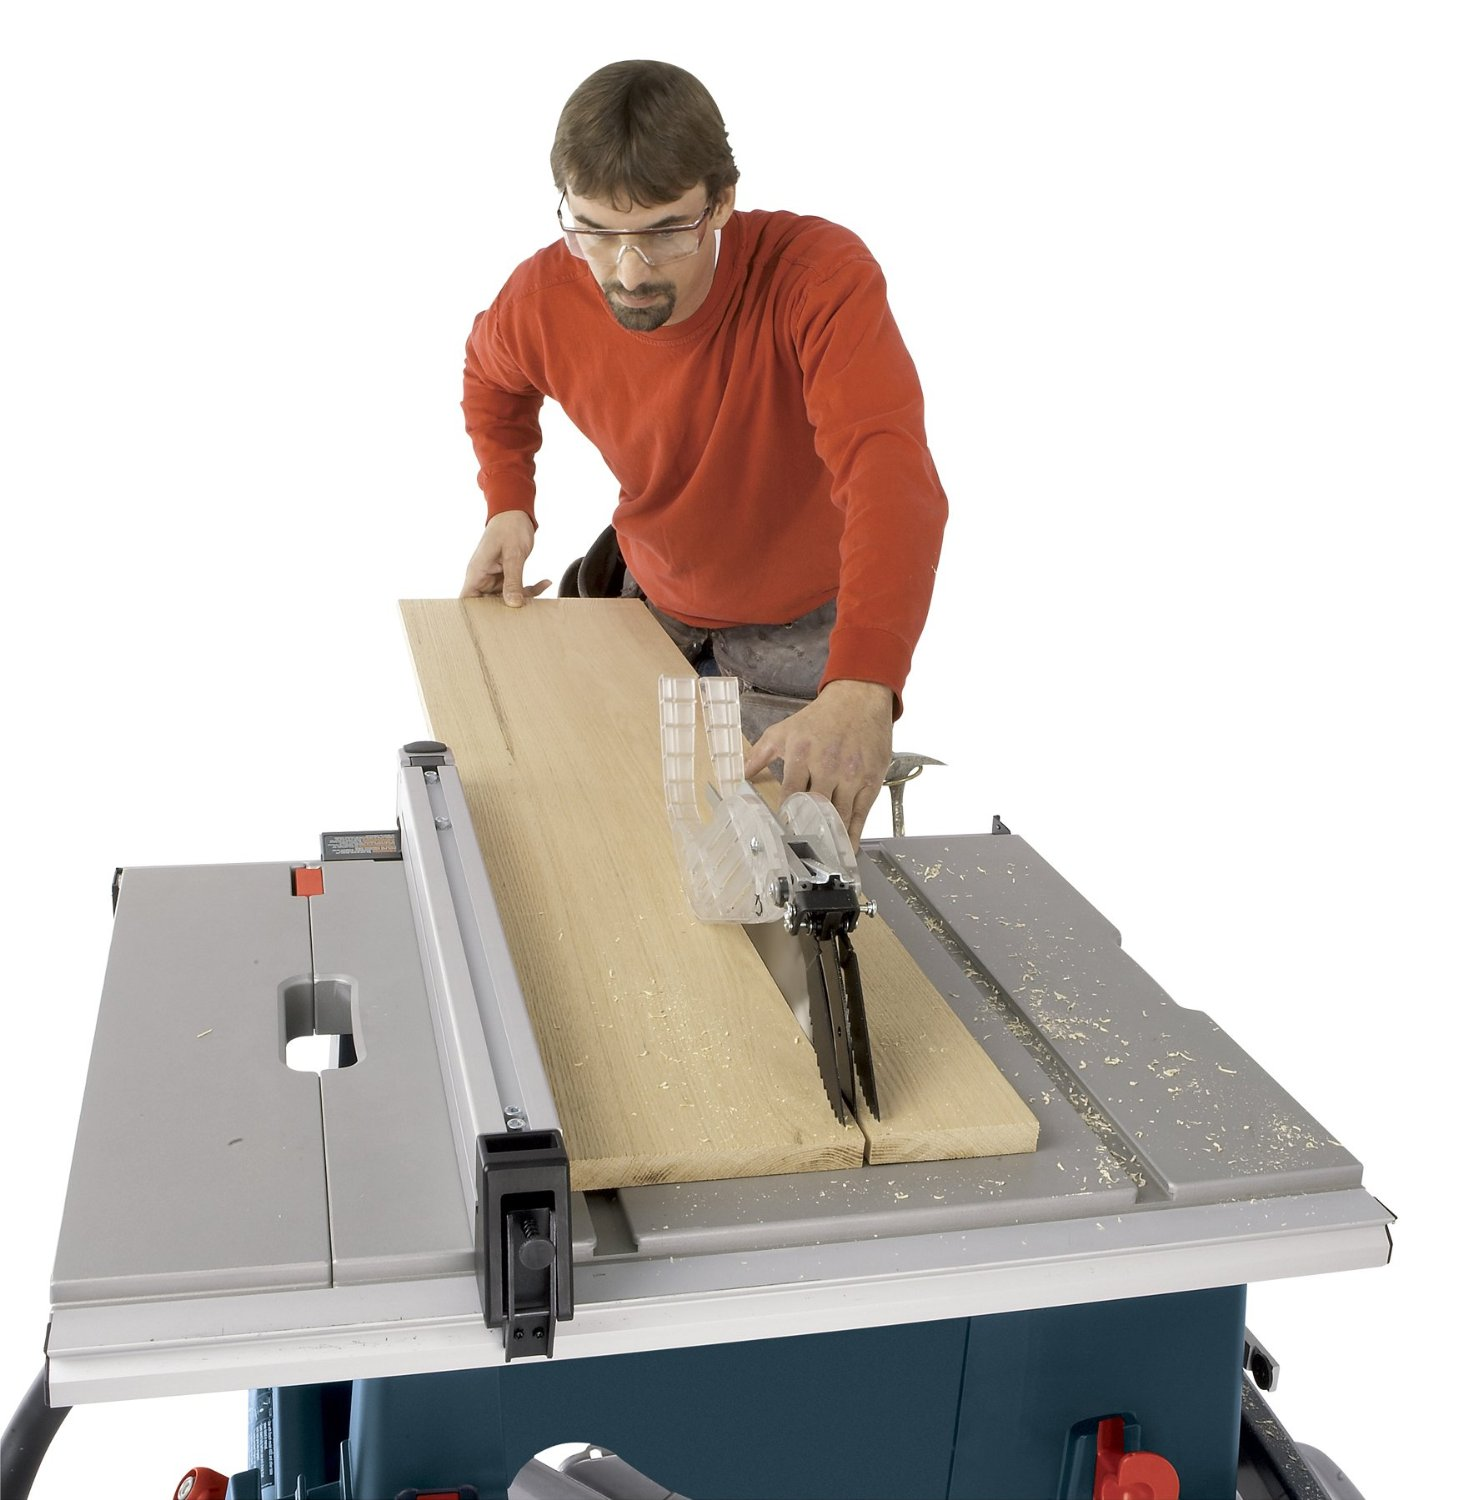 Bosch 4100 09 10 inch worksite table saw review Portable table saw reviews